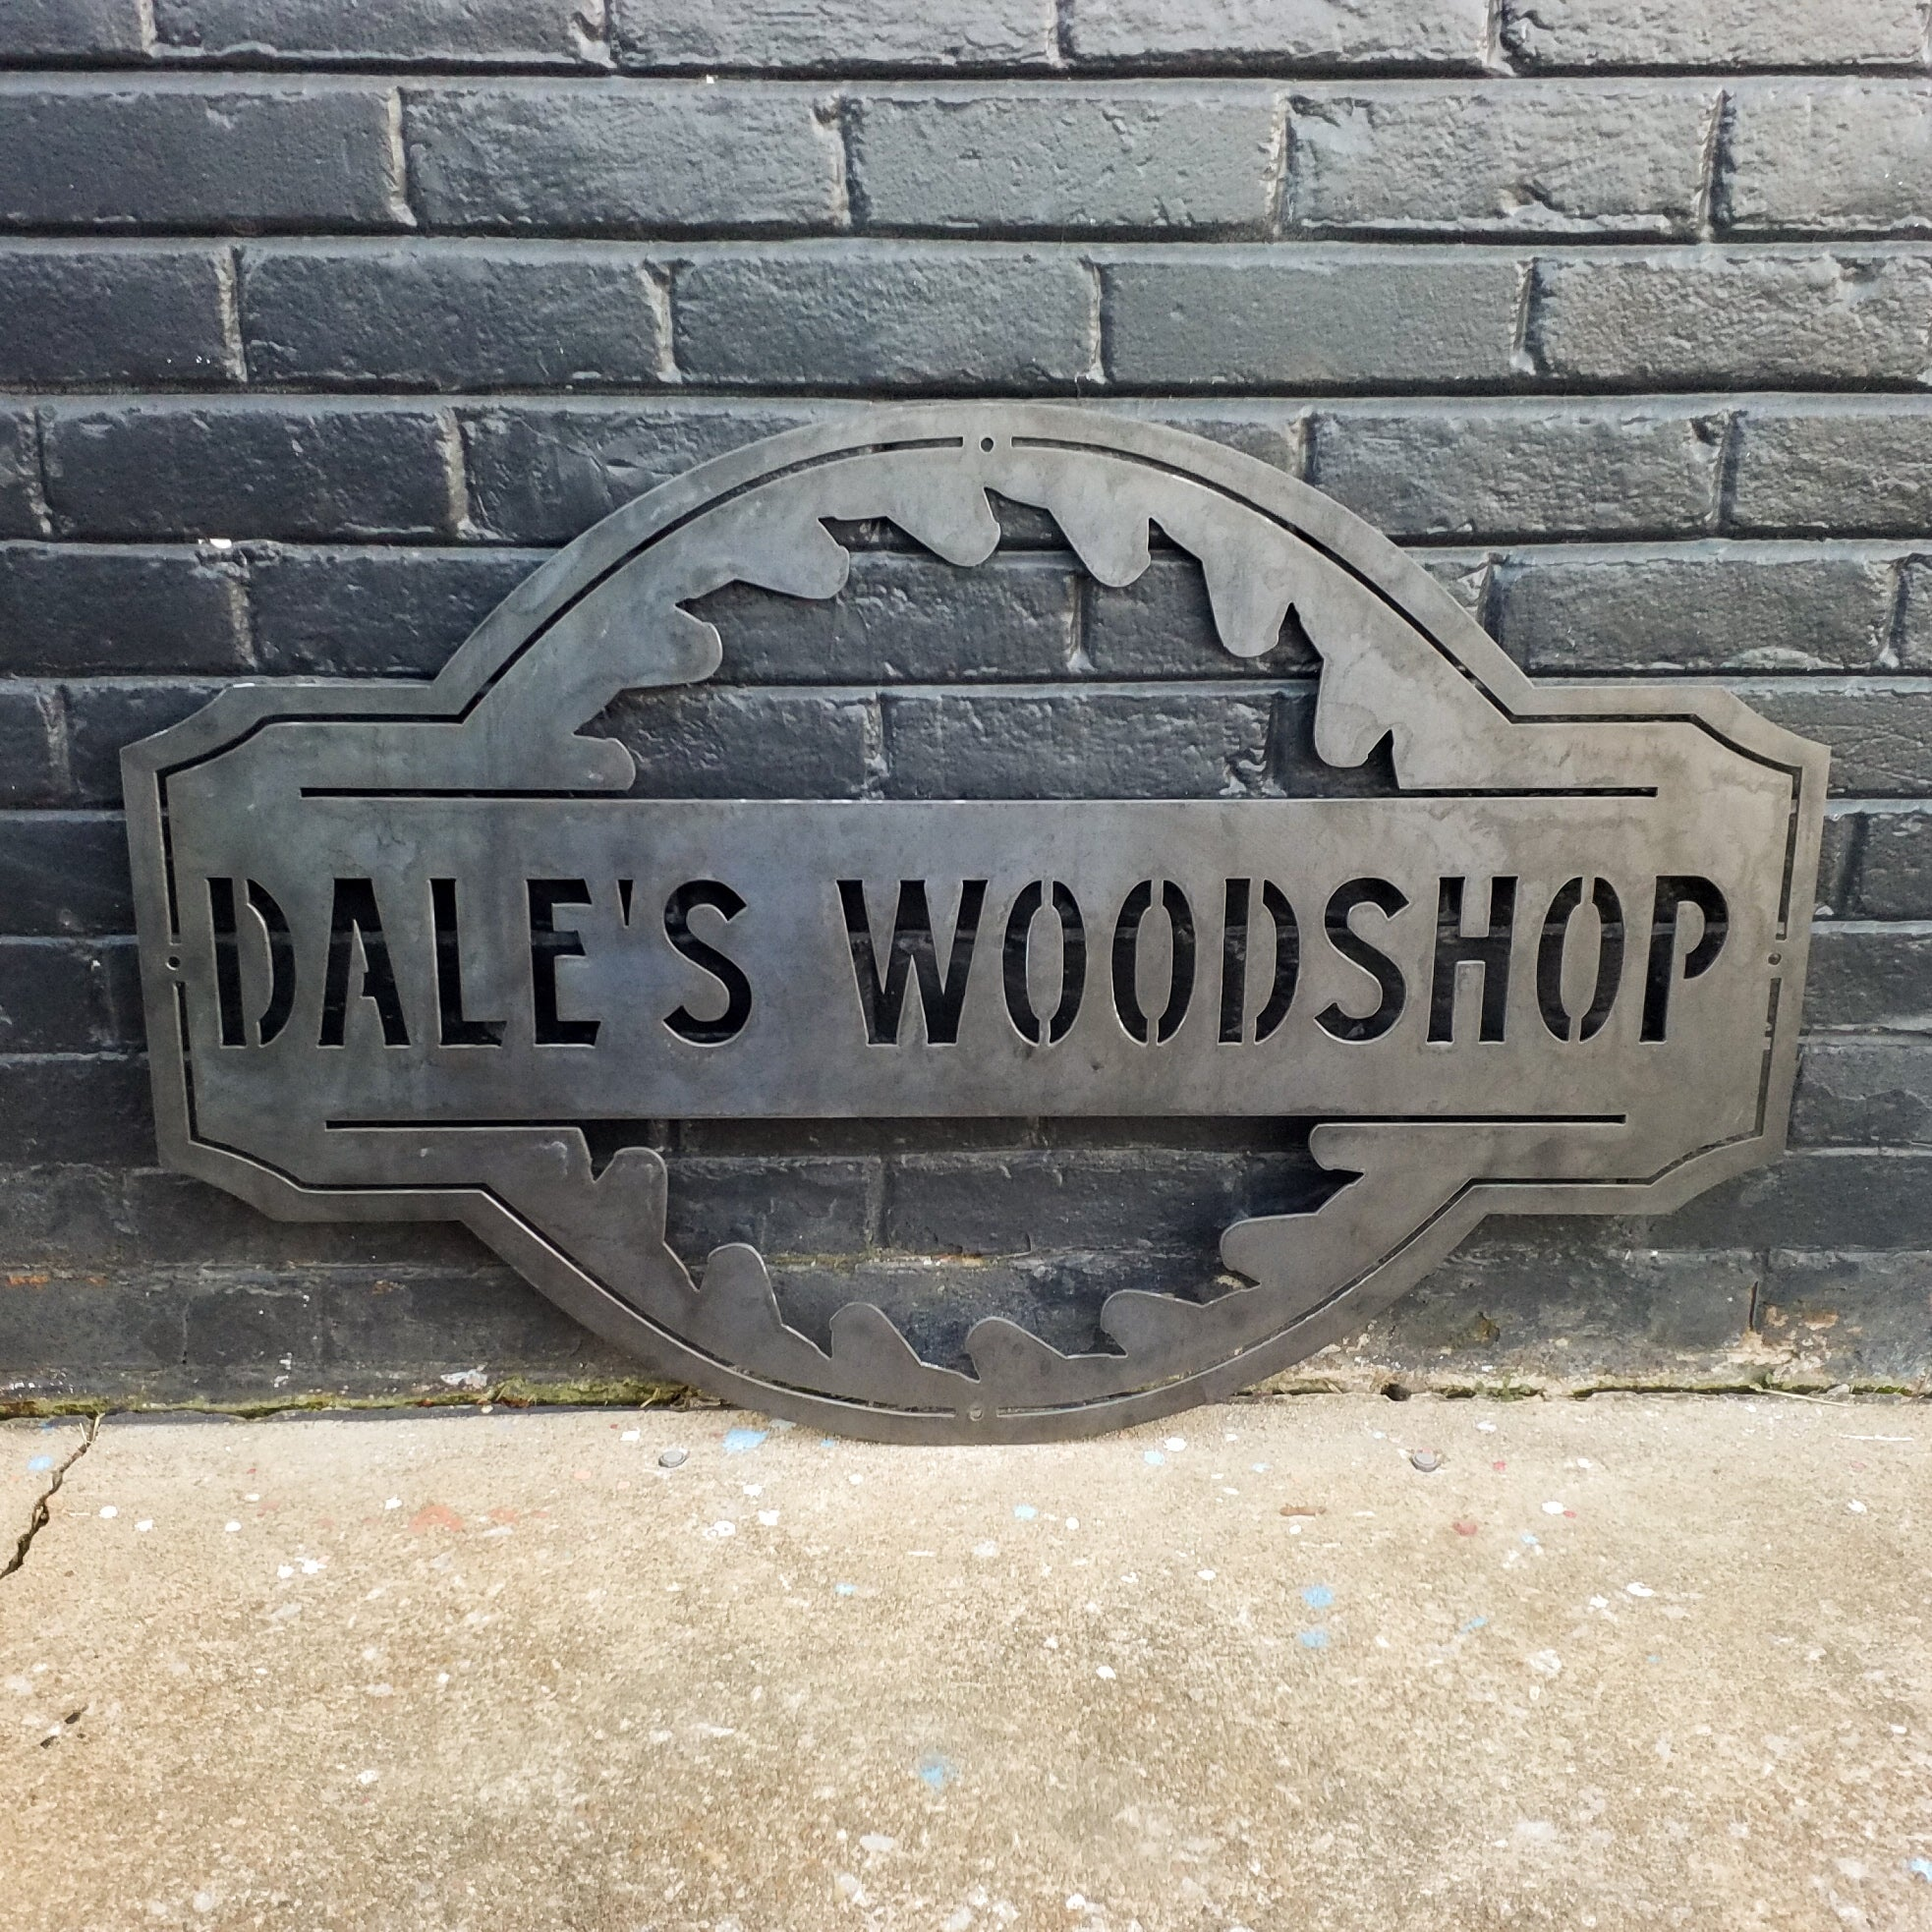 Personalized Woodshop Name Sign - Vintage Metal Workshop Decor - Man Cave Garage Wall Art